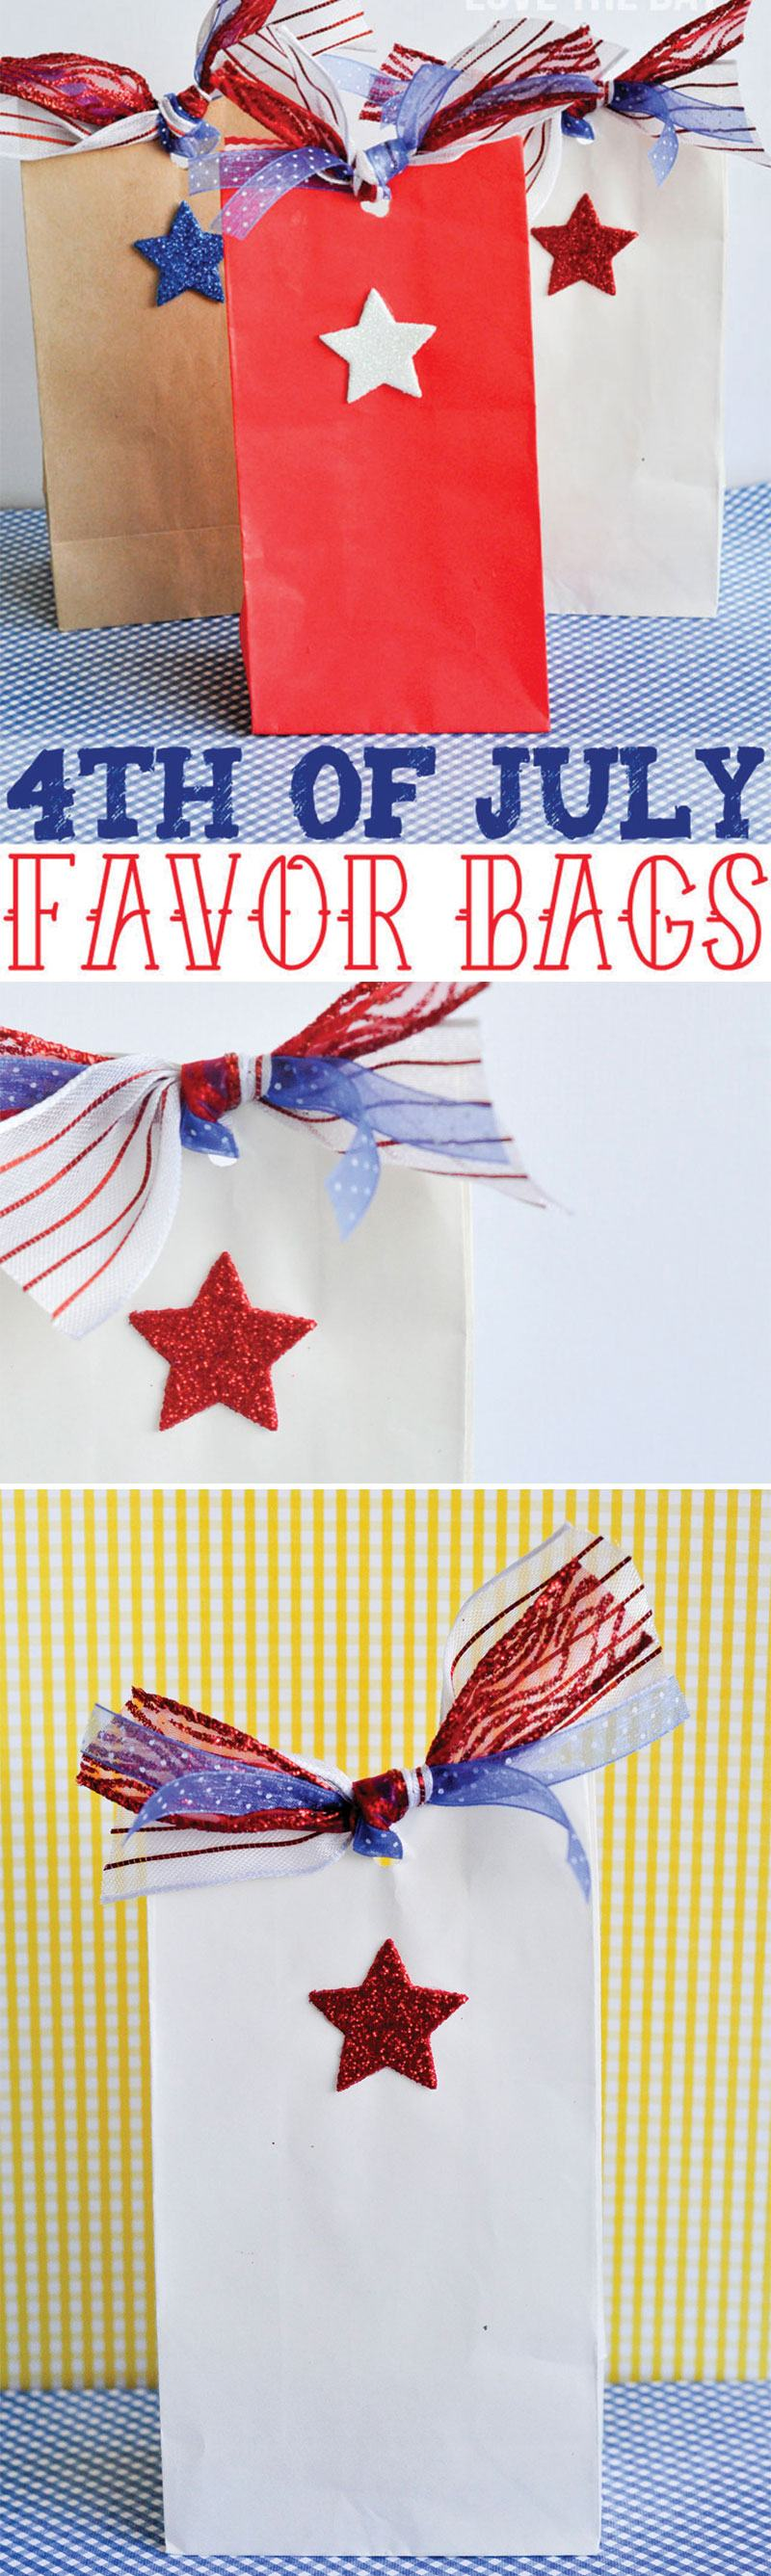 4th Of July Favor Bags by Lindi Haws of Love The Day